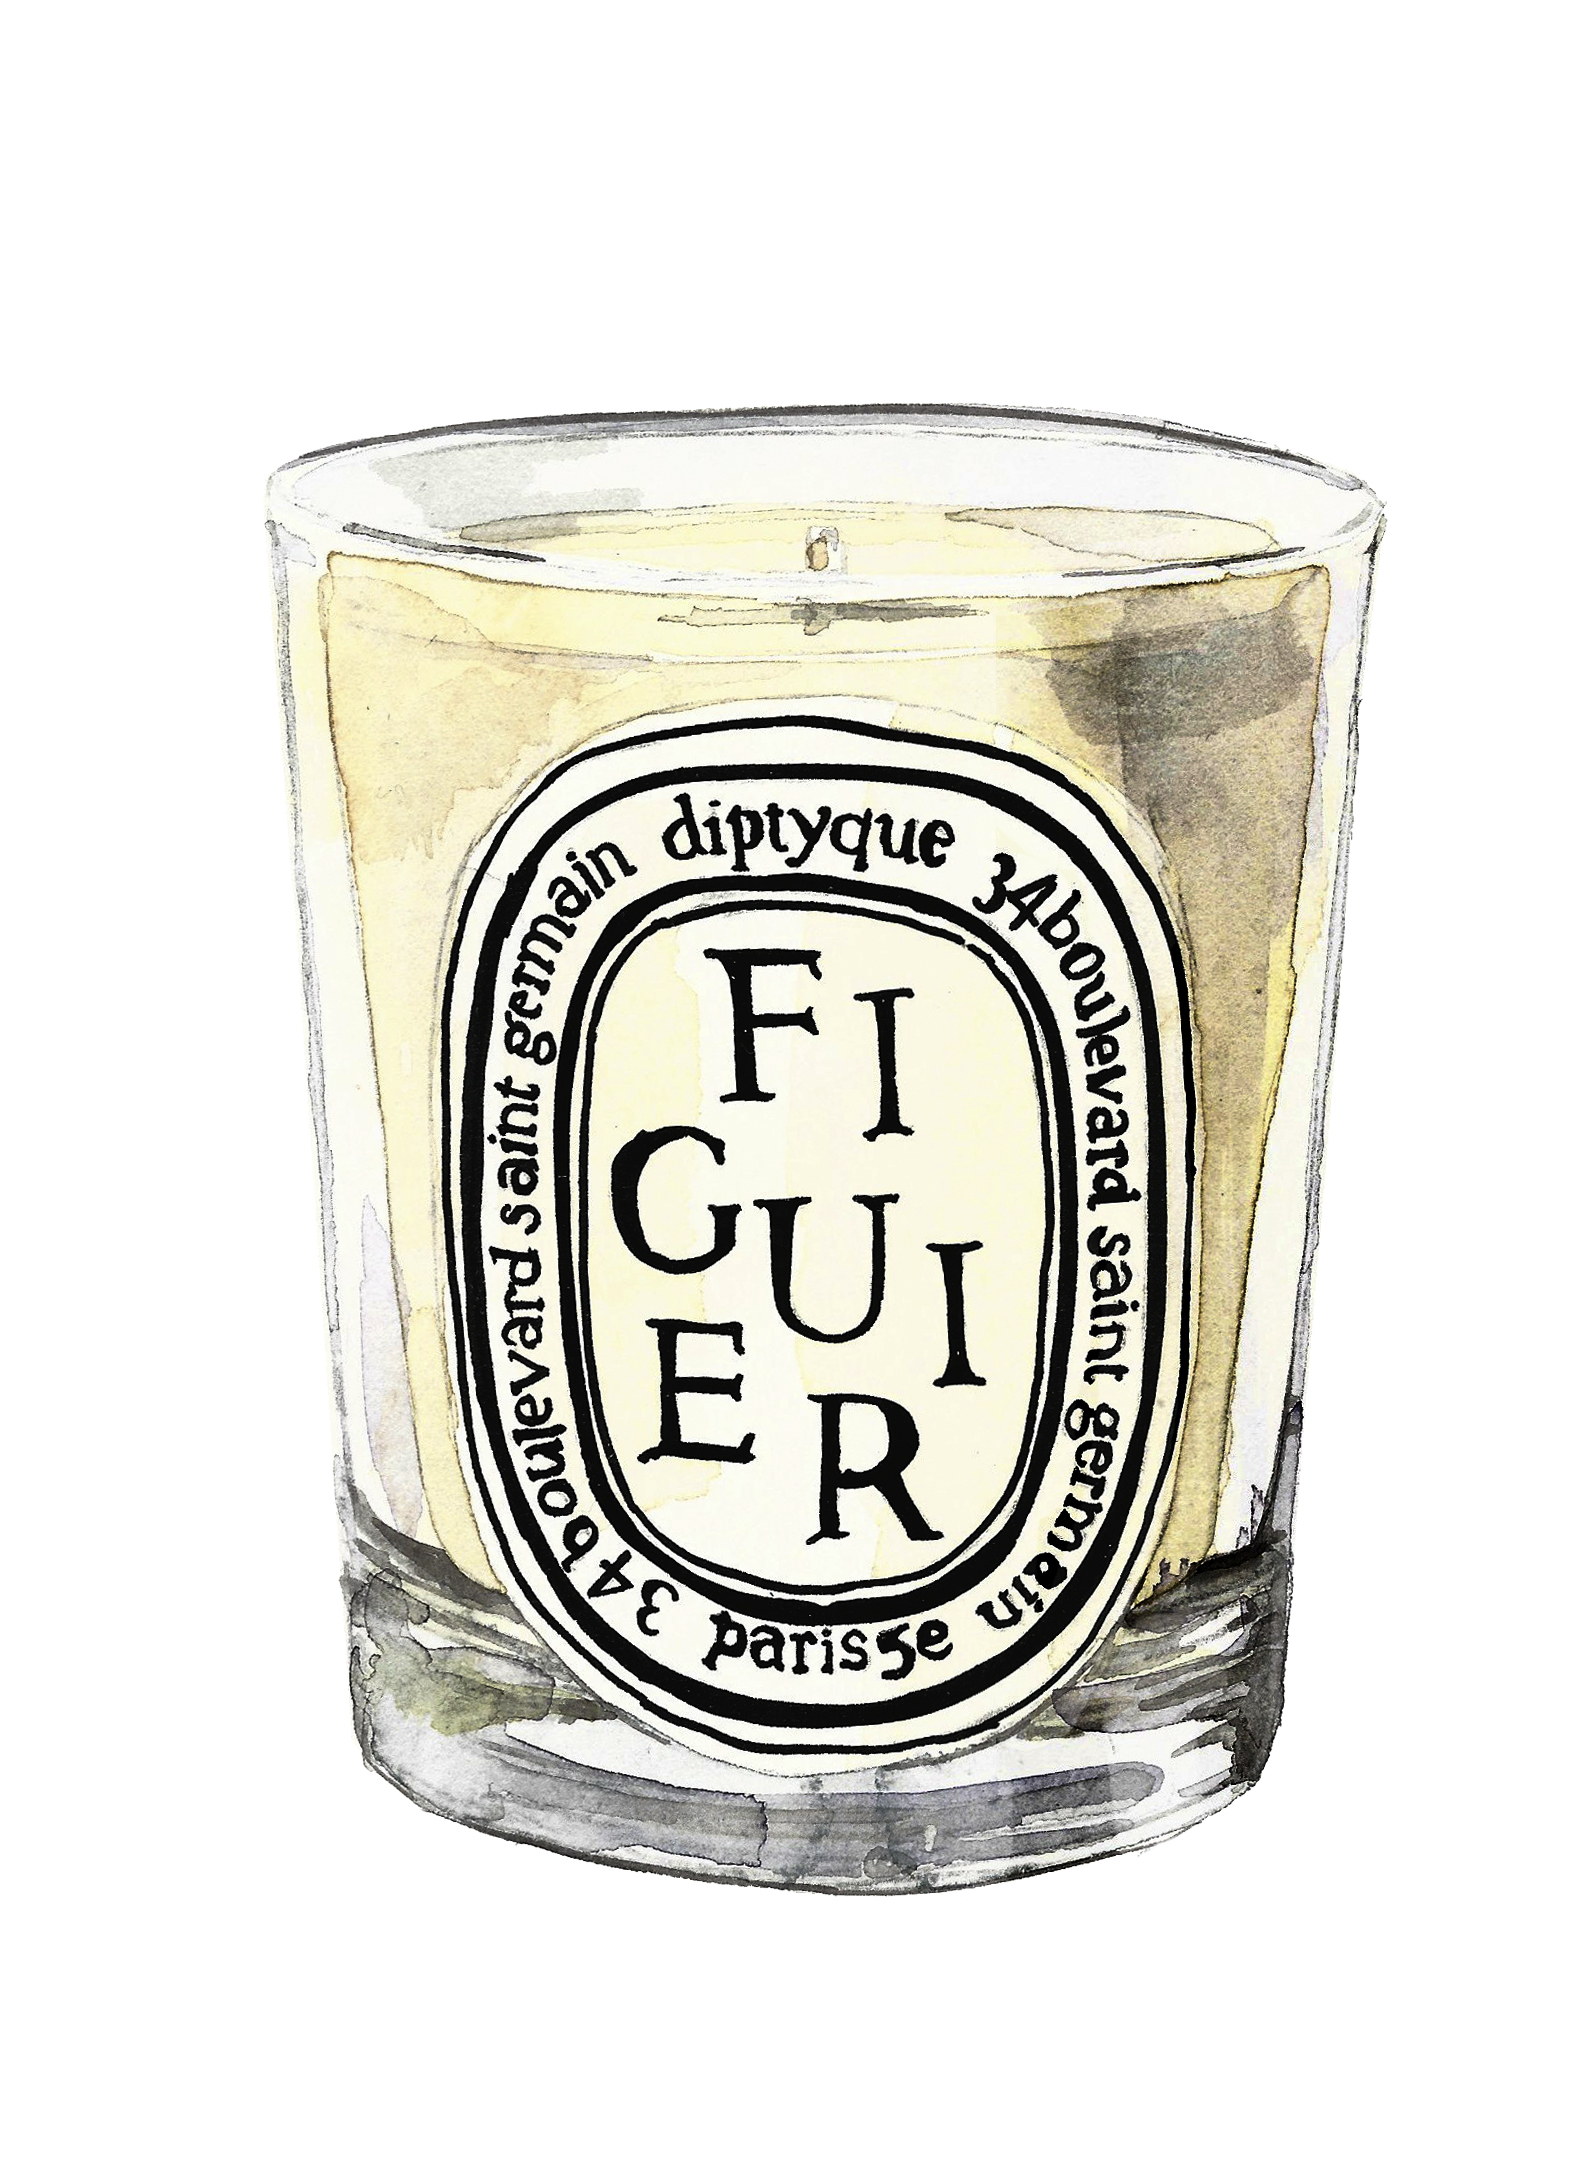 Candle Diptique